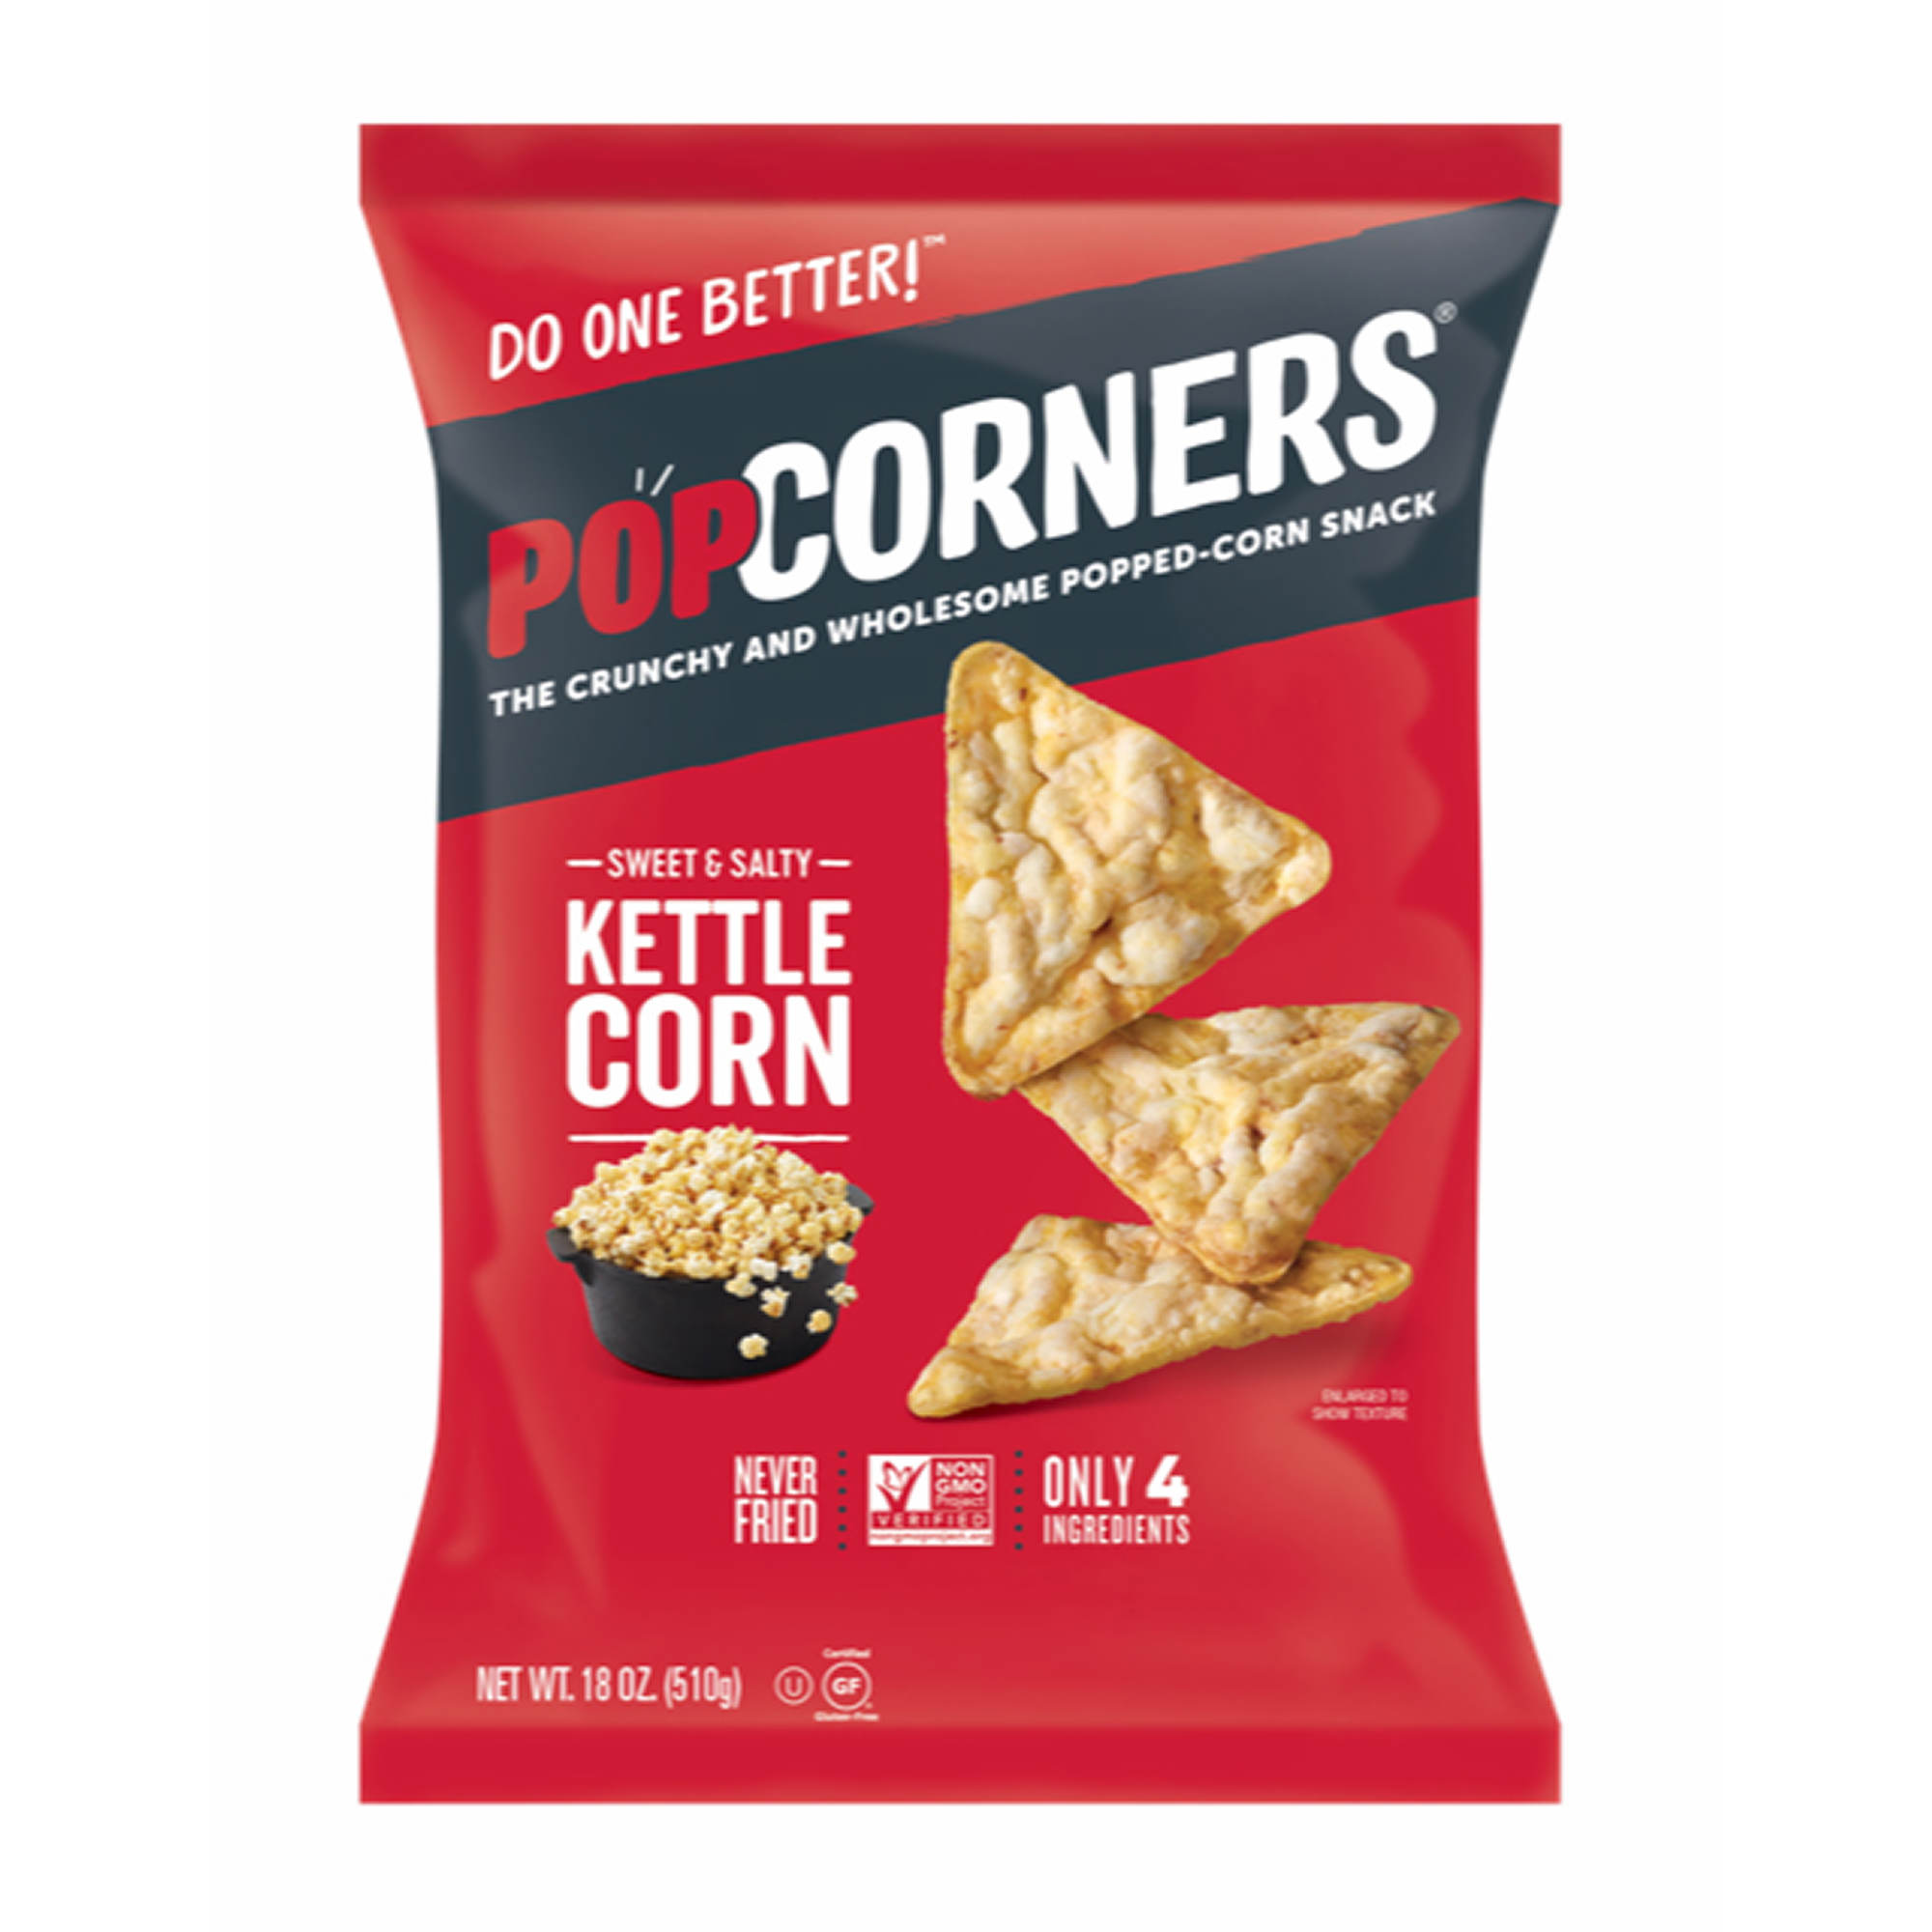 google map my location with Popcorners Kettle Corn Popped Corn Chips 18 Oz  Product on Contact as well  additionally File Monte Carlo Formula 1 track map with streets besides Lighthouse Day in addition Alana officialnewlaunch.